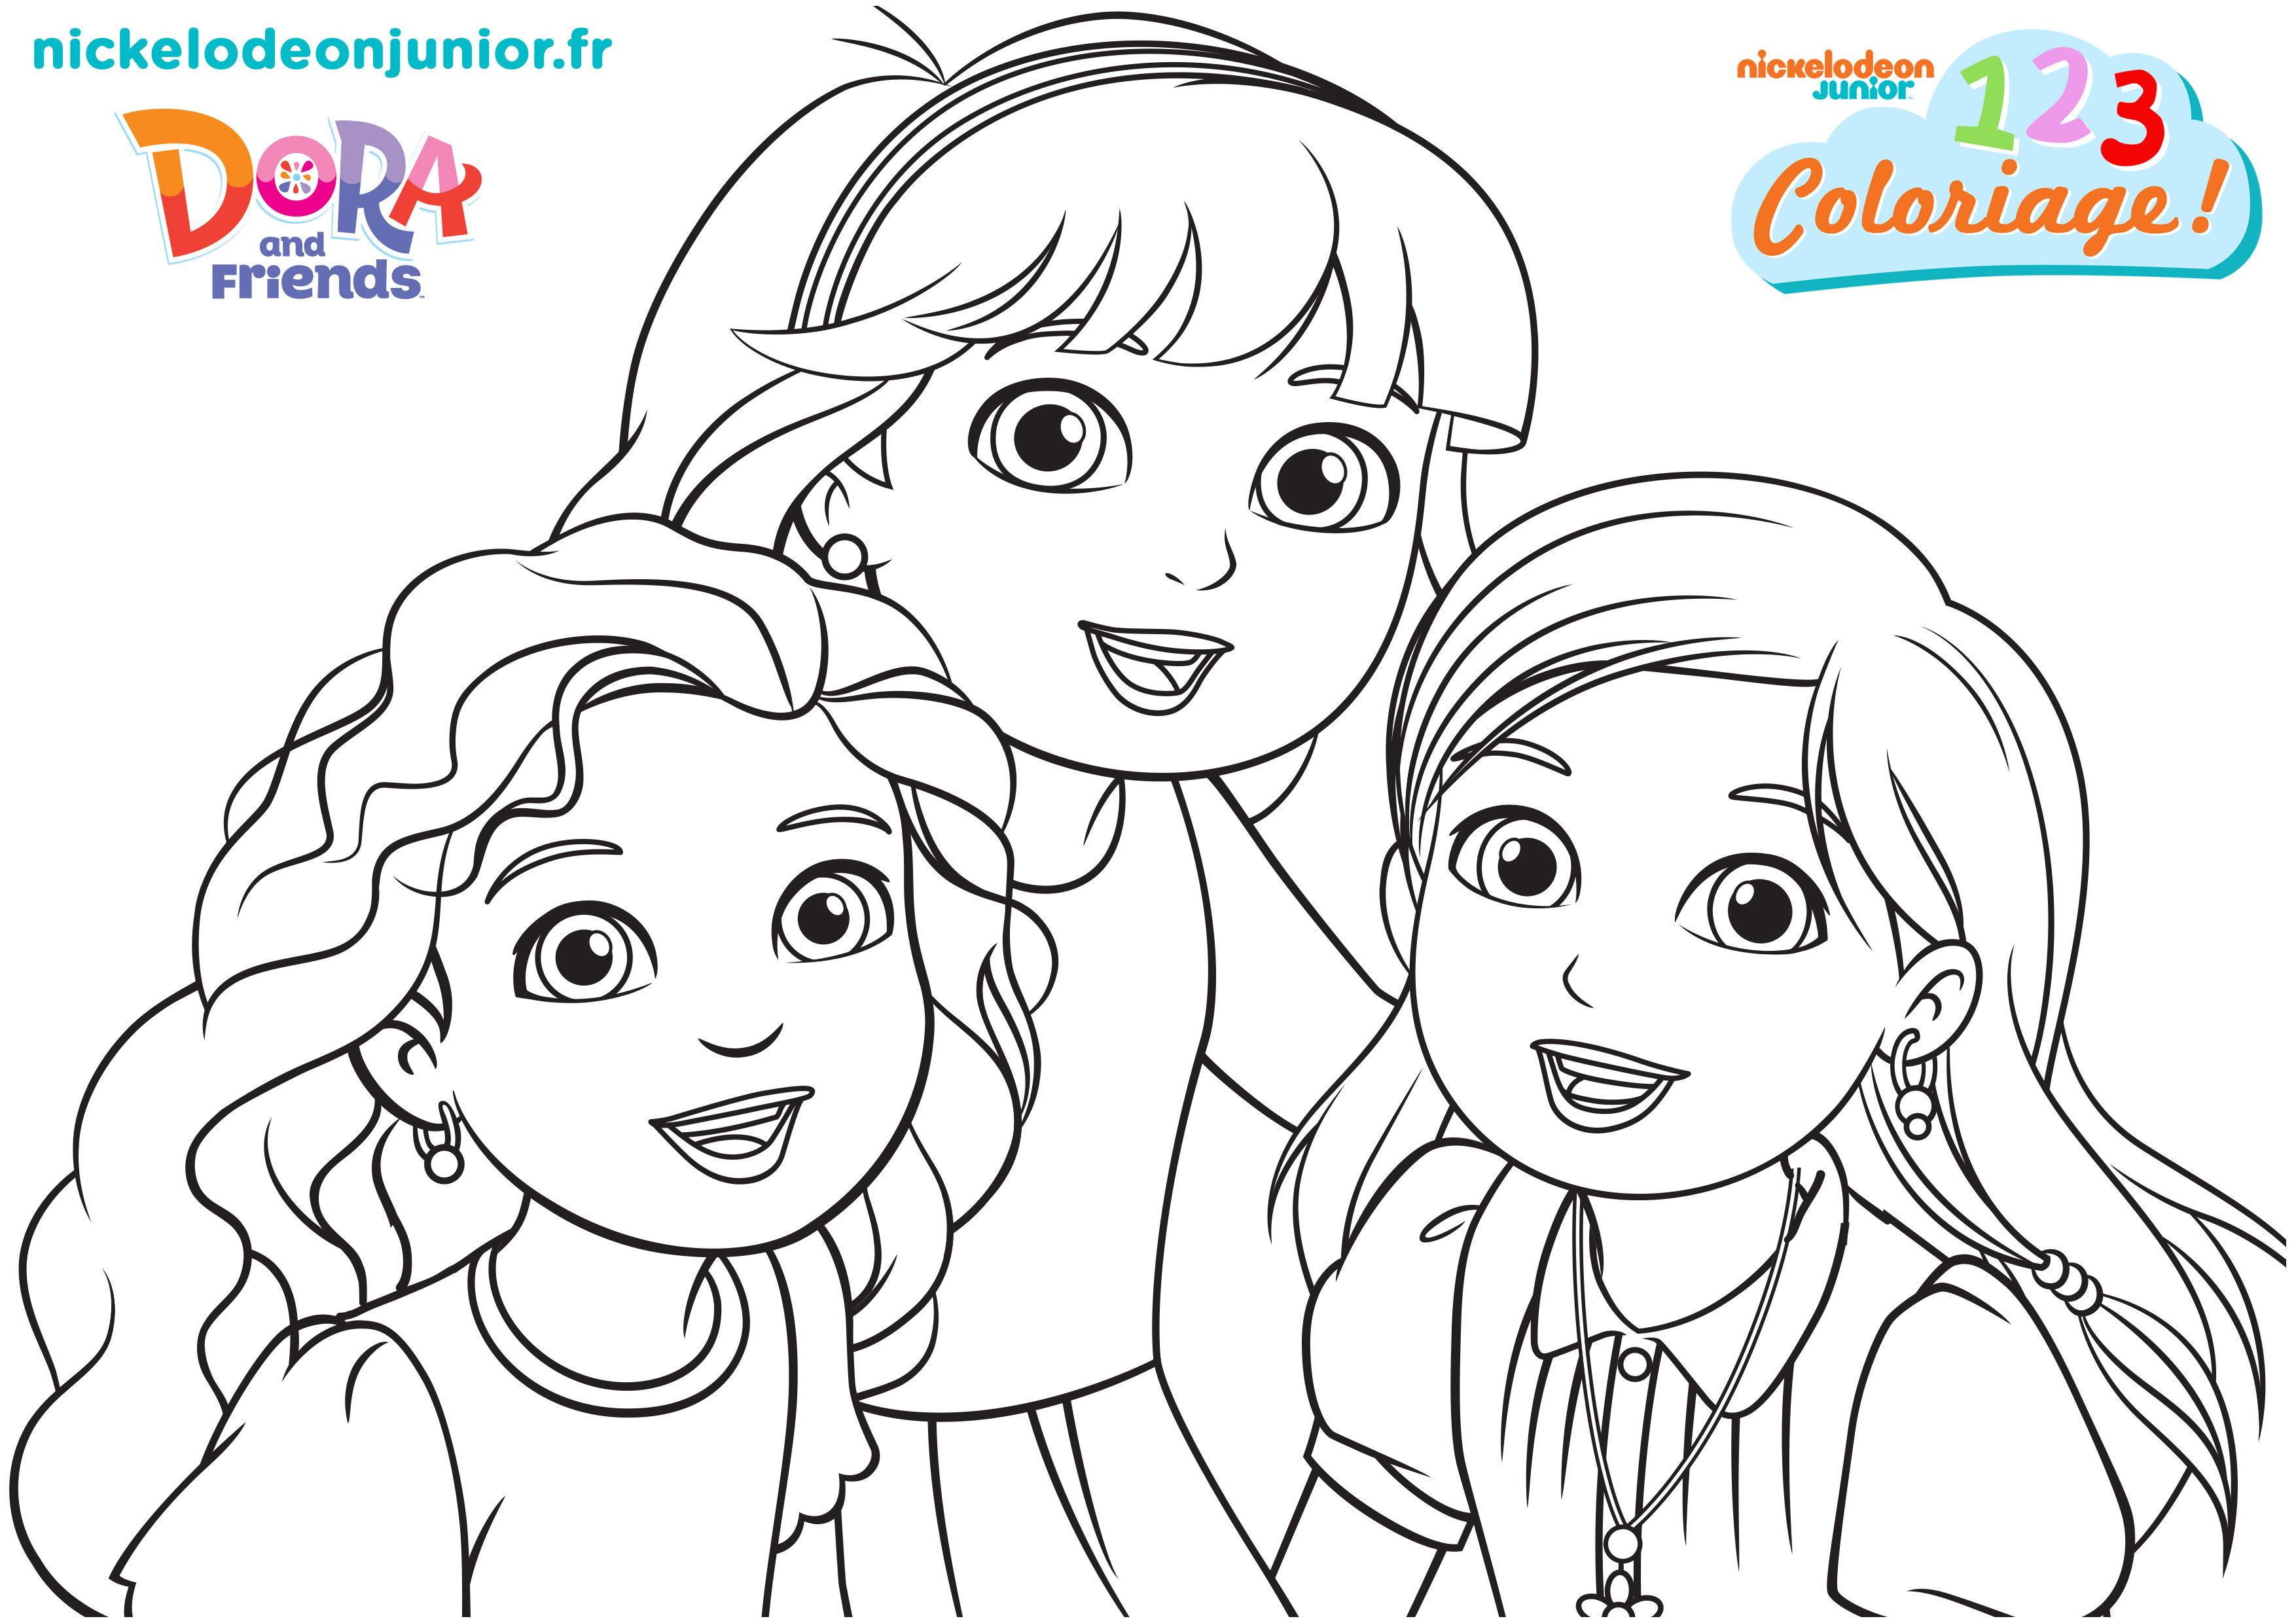 Coloriage Dora and Friends au coeur de la ville